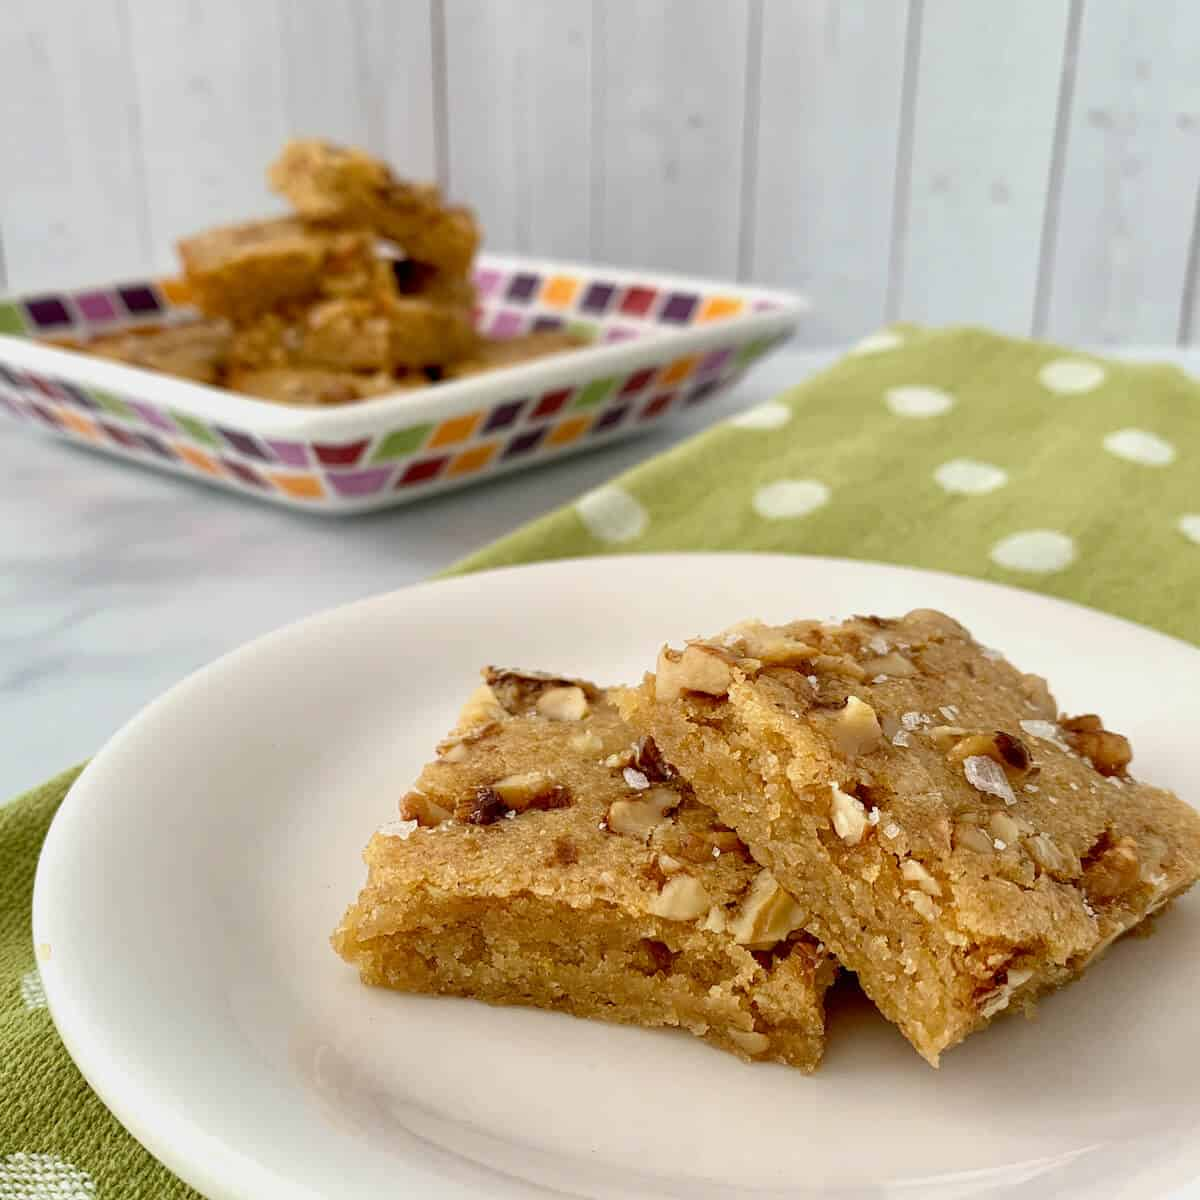 Stack of Maple Walnut Bourbon Blondies on a white plate sitting on a green towel with white polka dots..